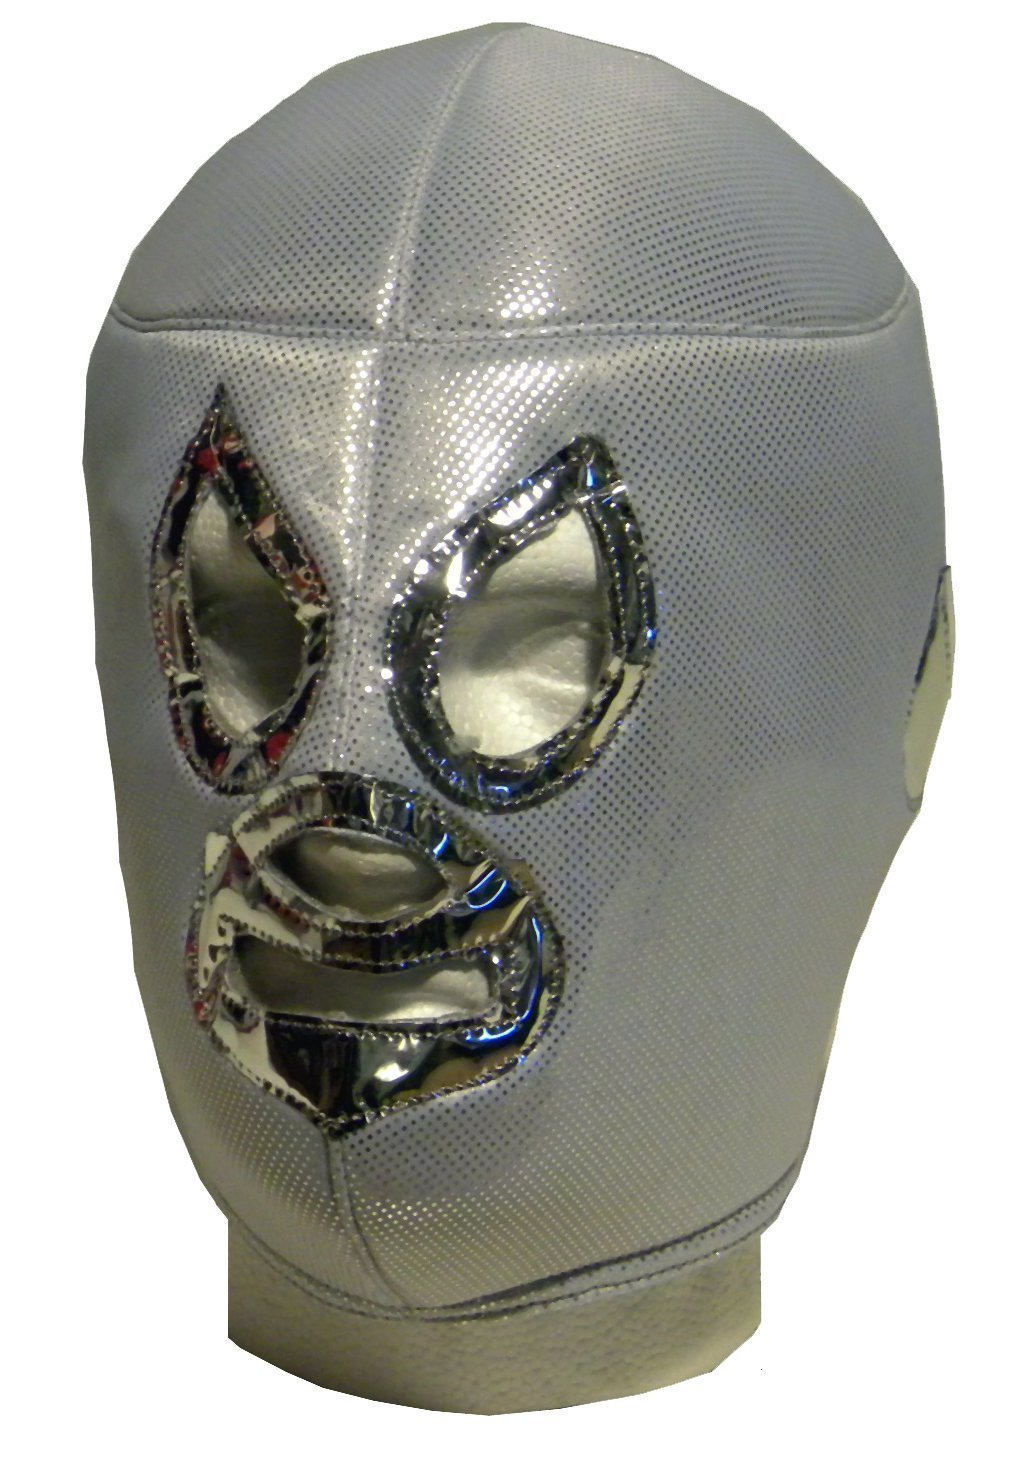 WRESTLING MASKS UK Men's Silver Santo El - Mexican - Tie Up Mask One Size Multicoloured by Wrestling